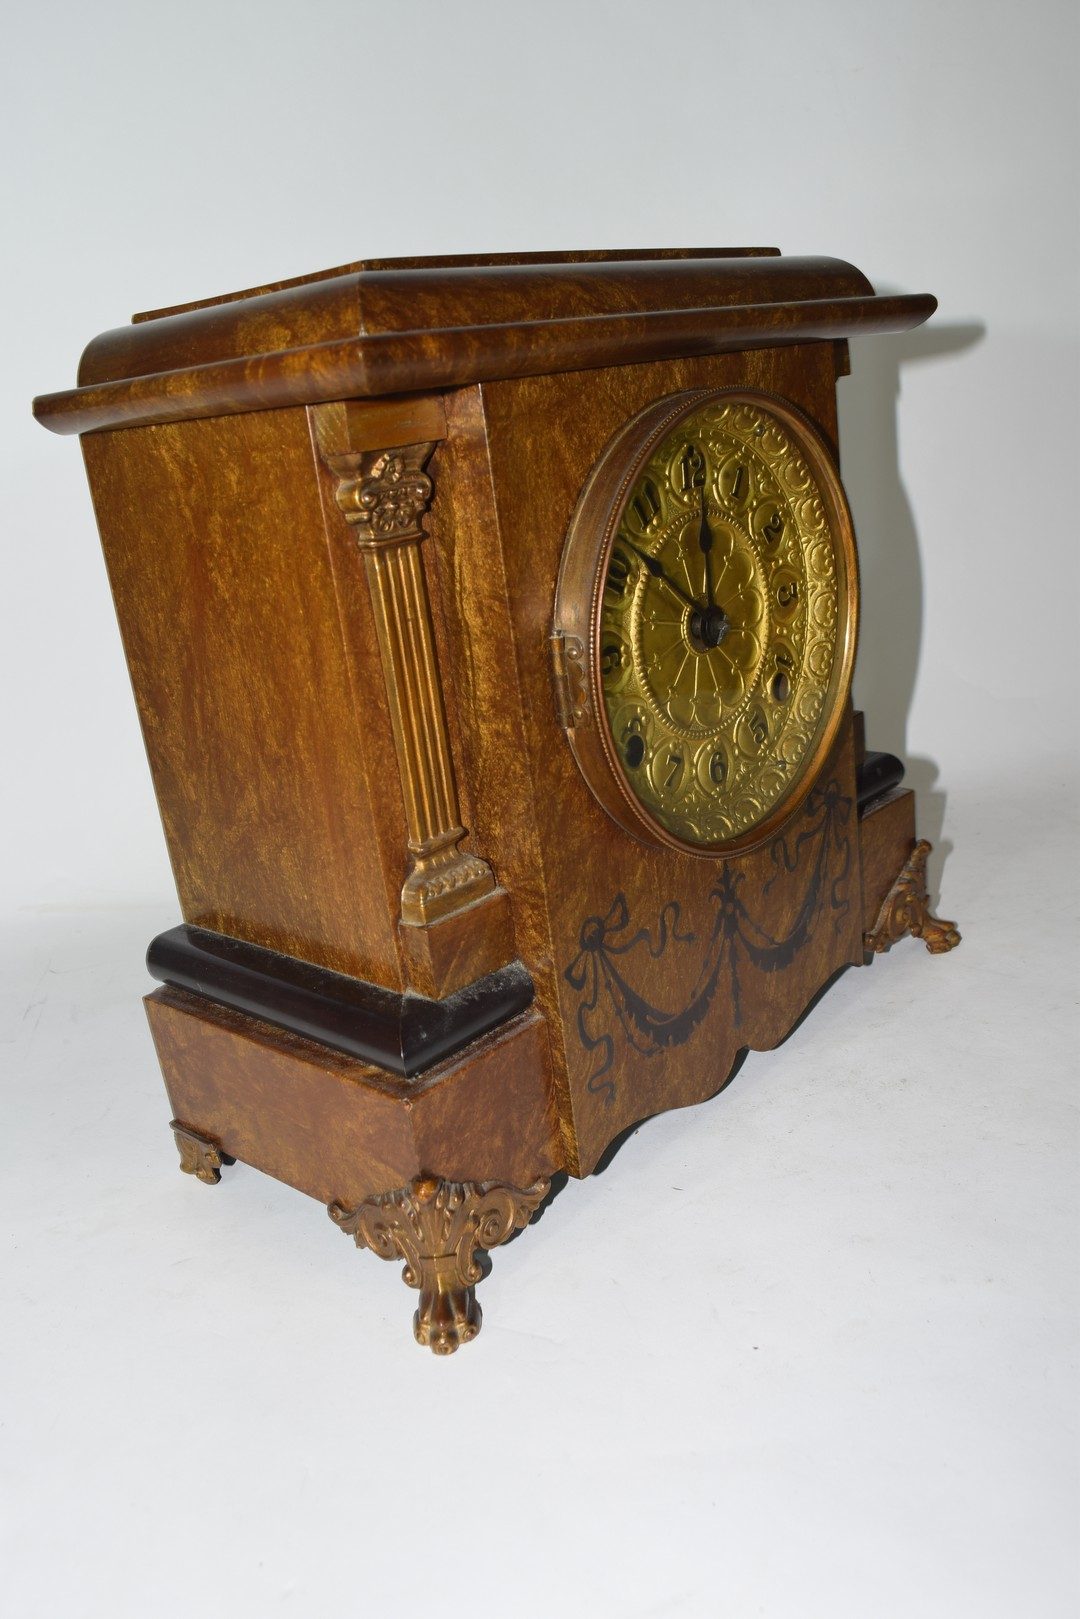 Early 20th century mantel clock - Image 2 of 3